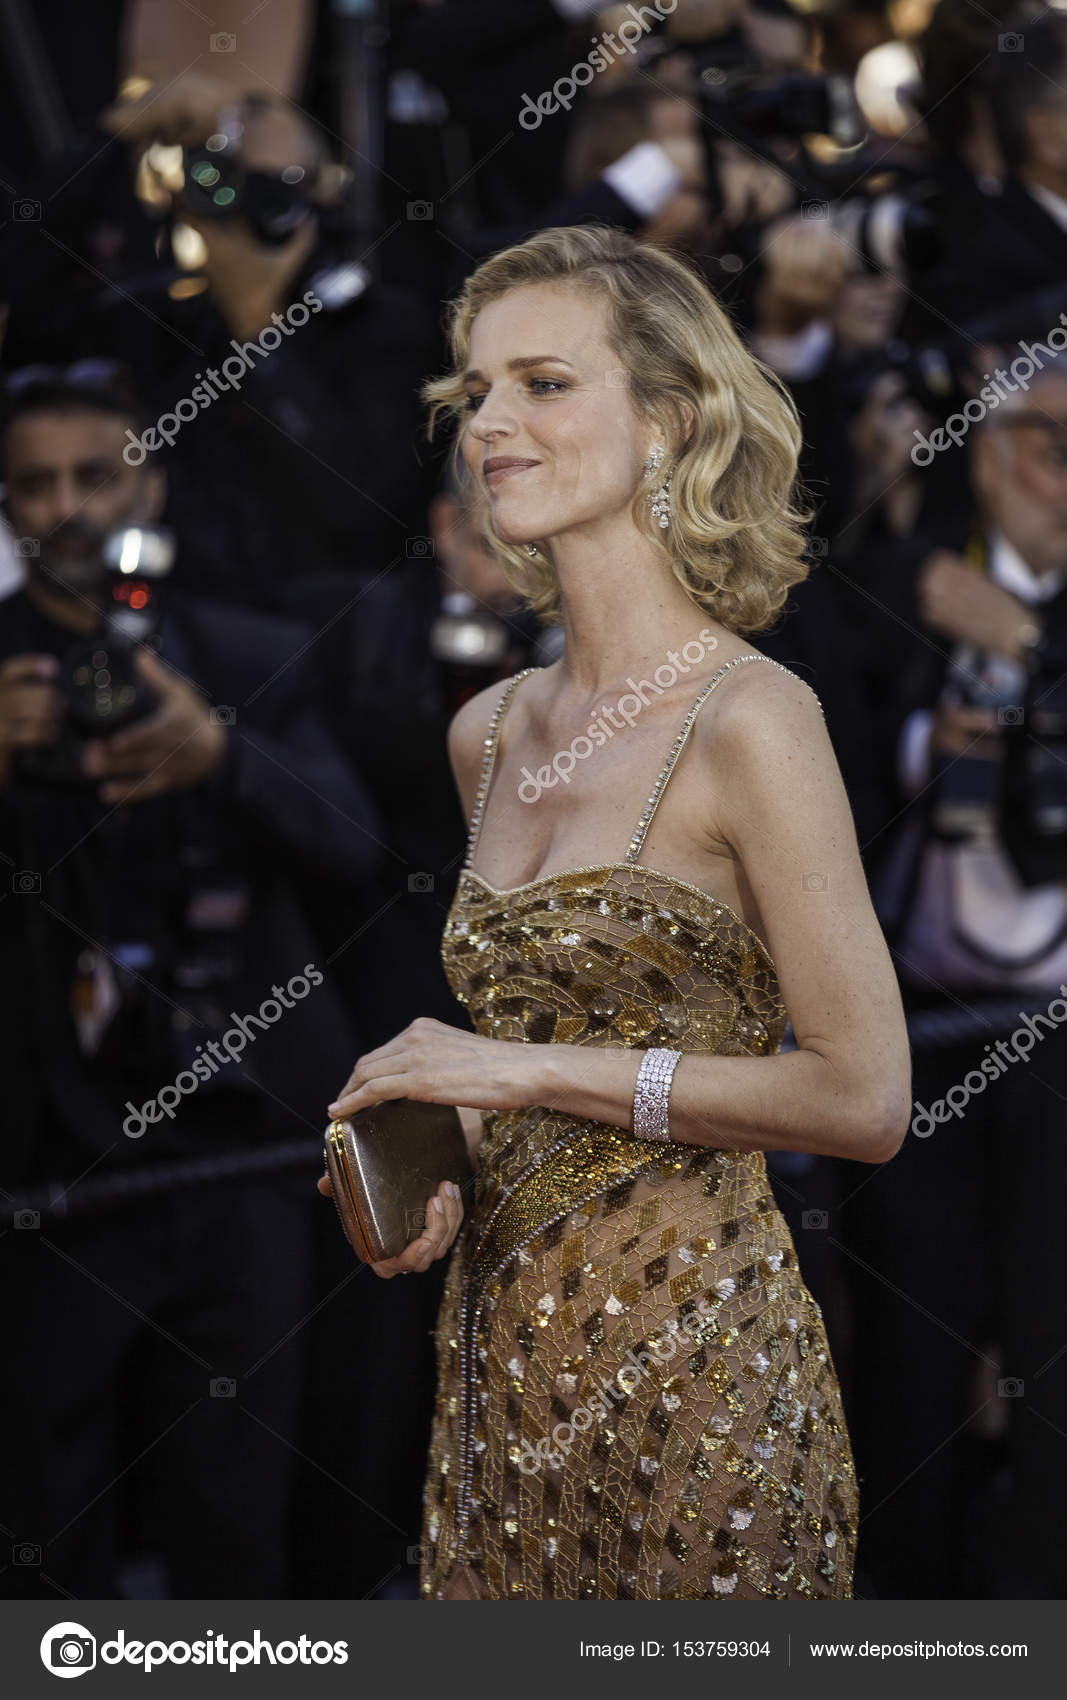 Eva Herzigova At Opening Gala In Cannes Stock Editorial Photo C Tanka V 153759304